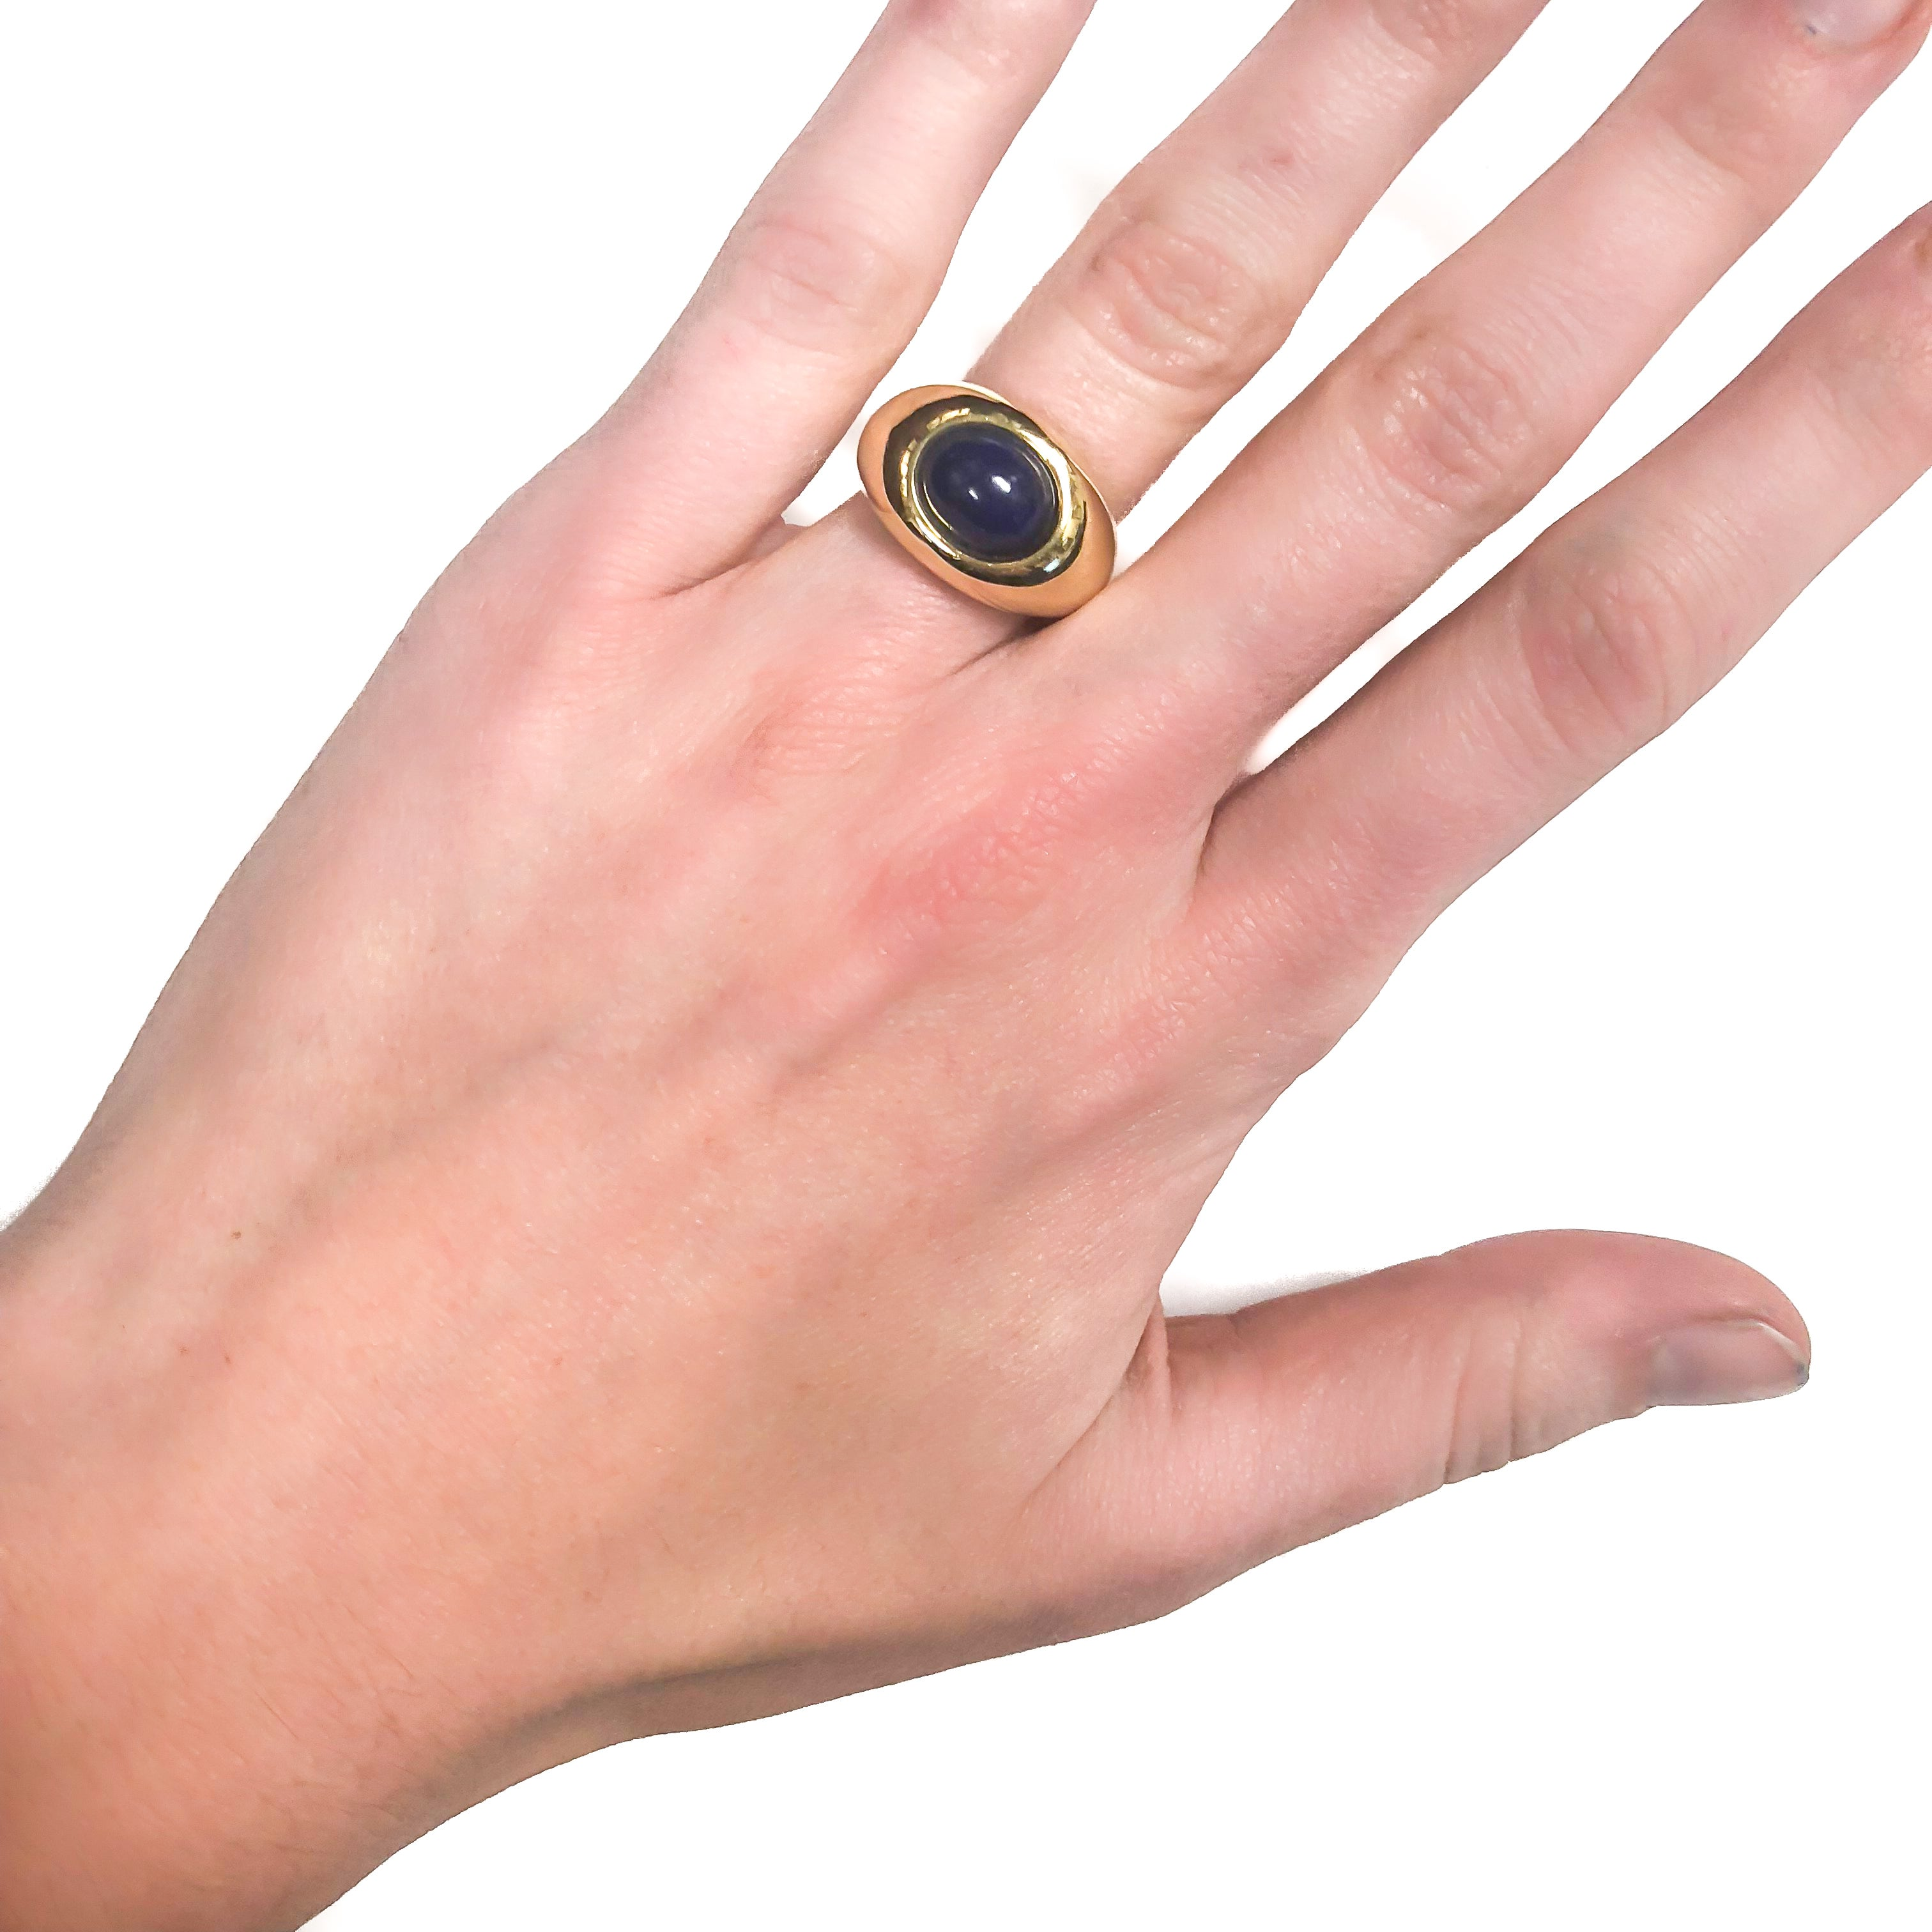 Tiffany and Co. Lapis Gold Ring For Sale at 1stdibs